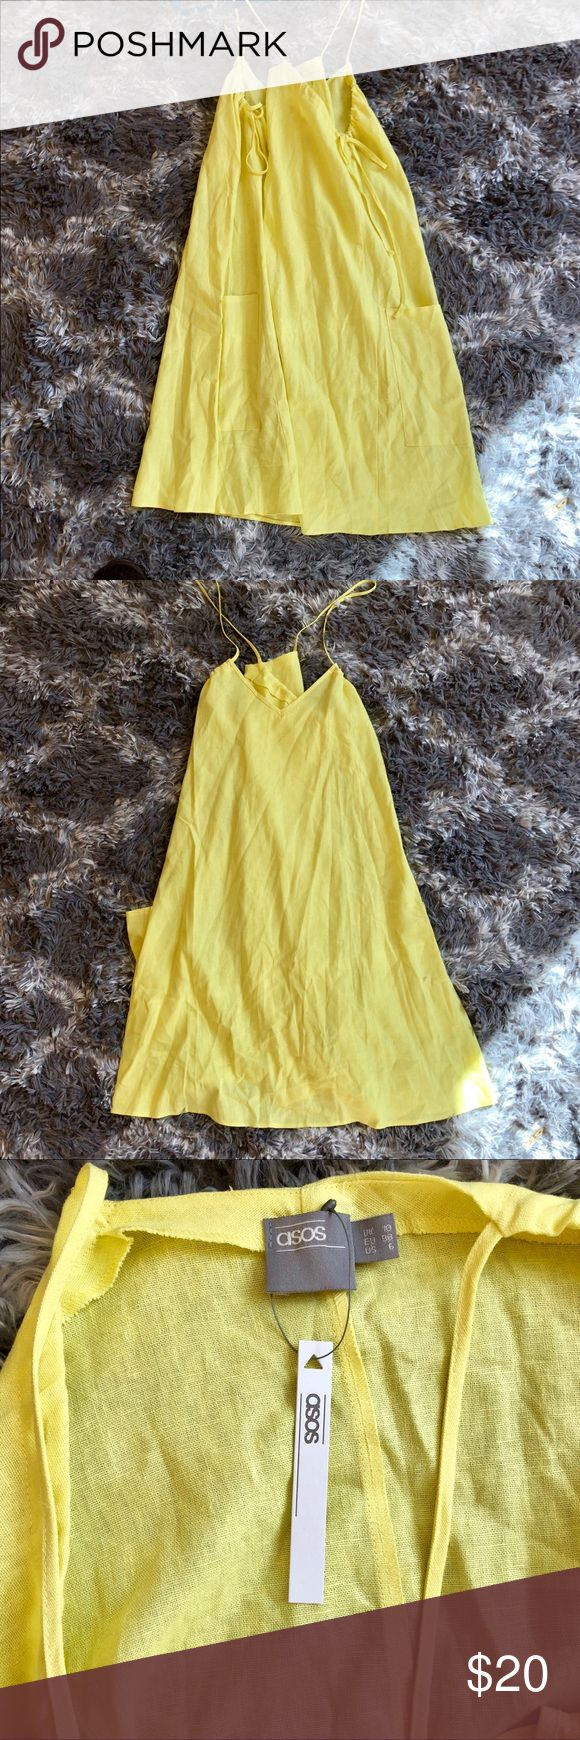 Yellow ASOS Summer Dress This yellow ASOS dress is new with tags. The straps are adjustable and tie on the side along with two large pockets. The material is very breathable and the fit is very loose. Tobi Dresses Mini